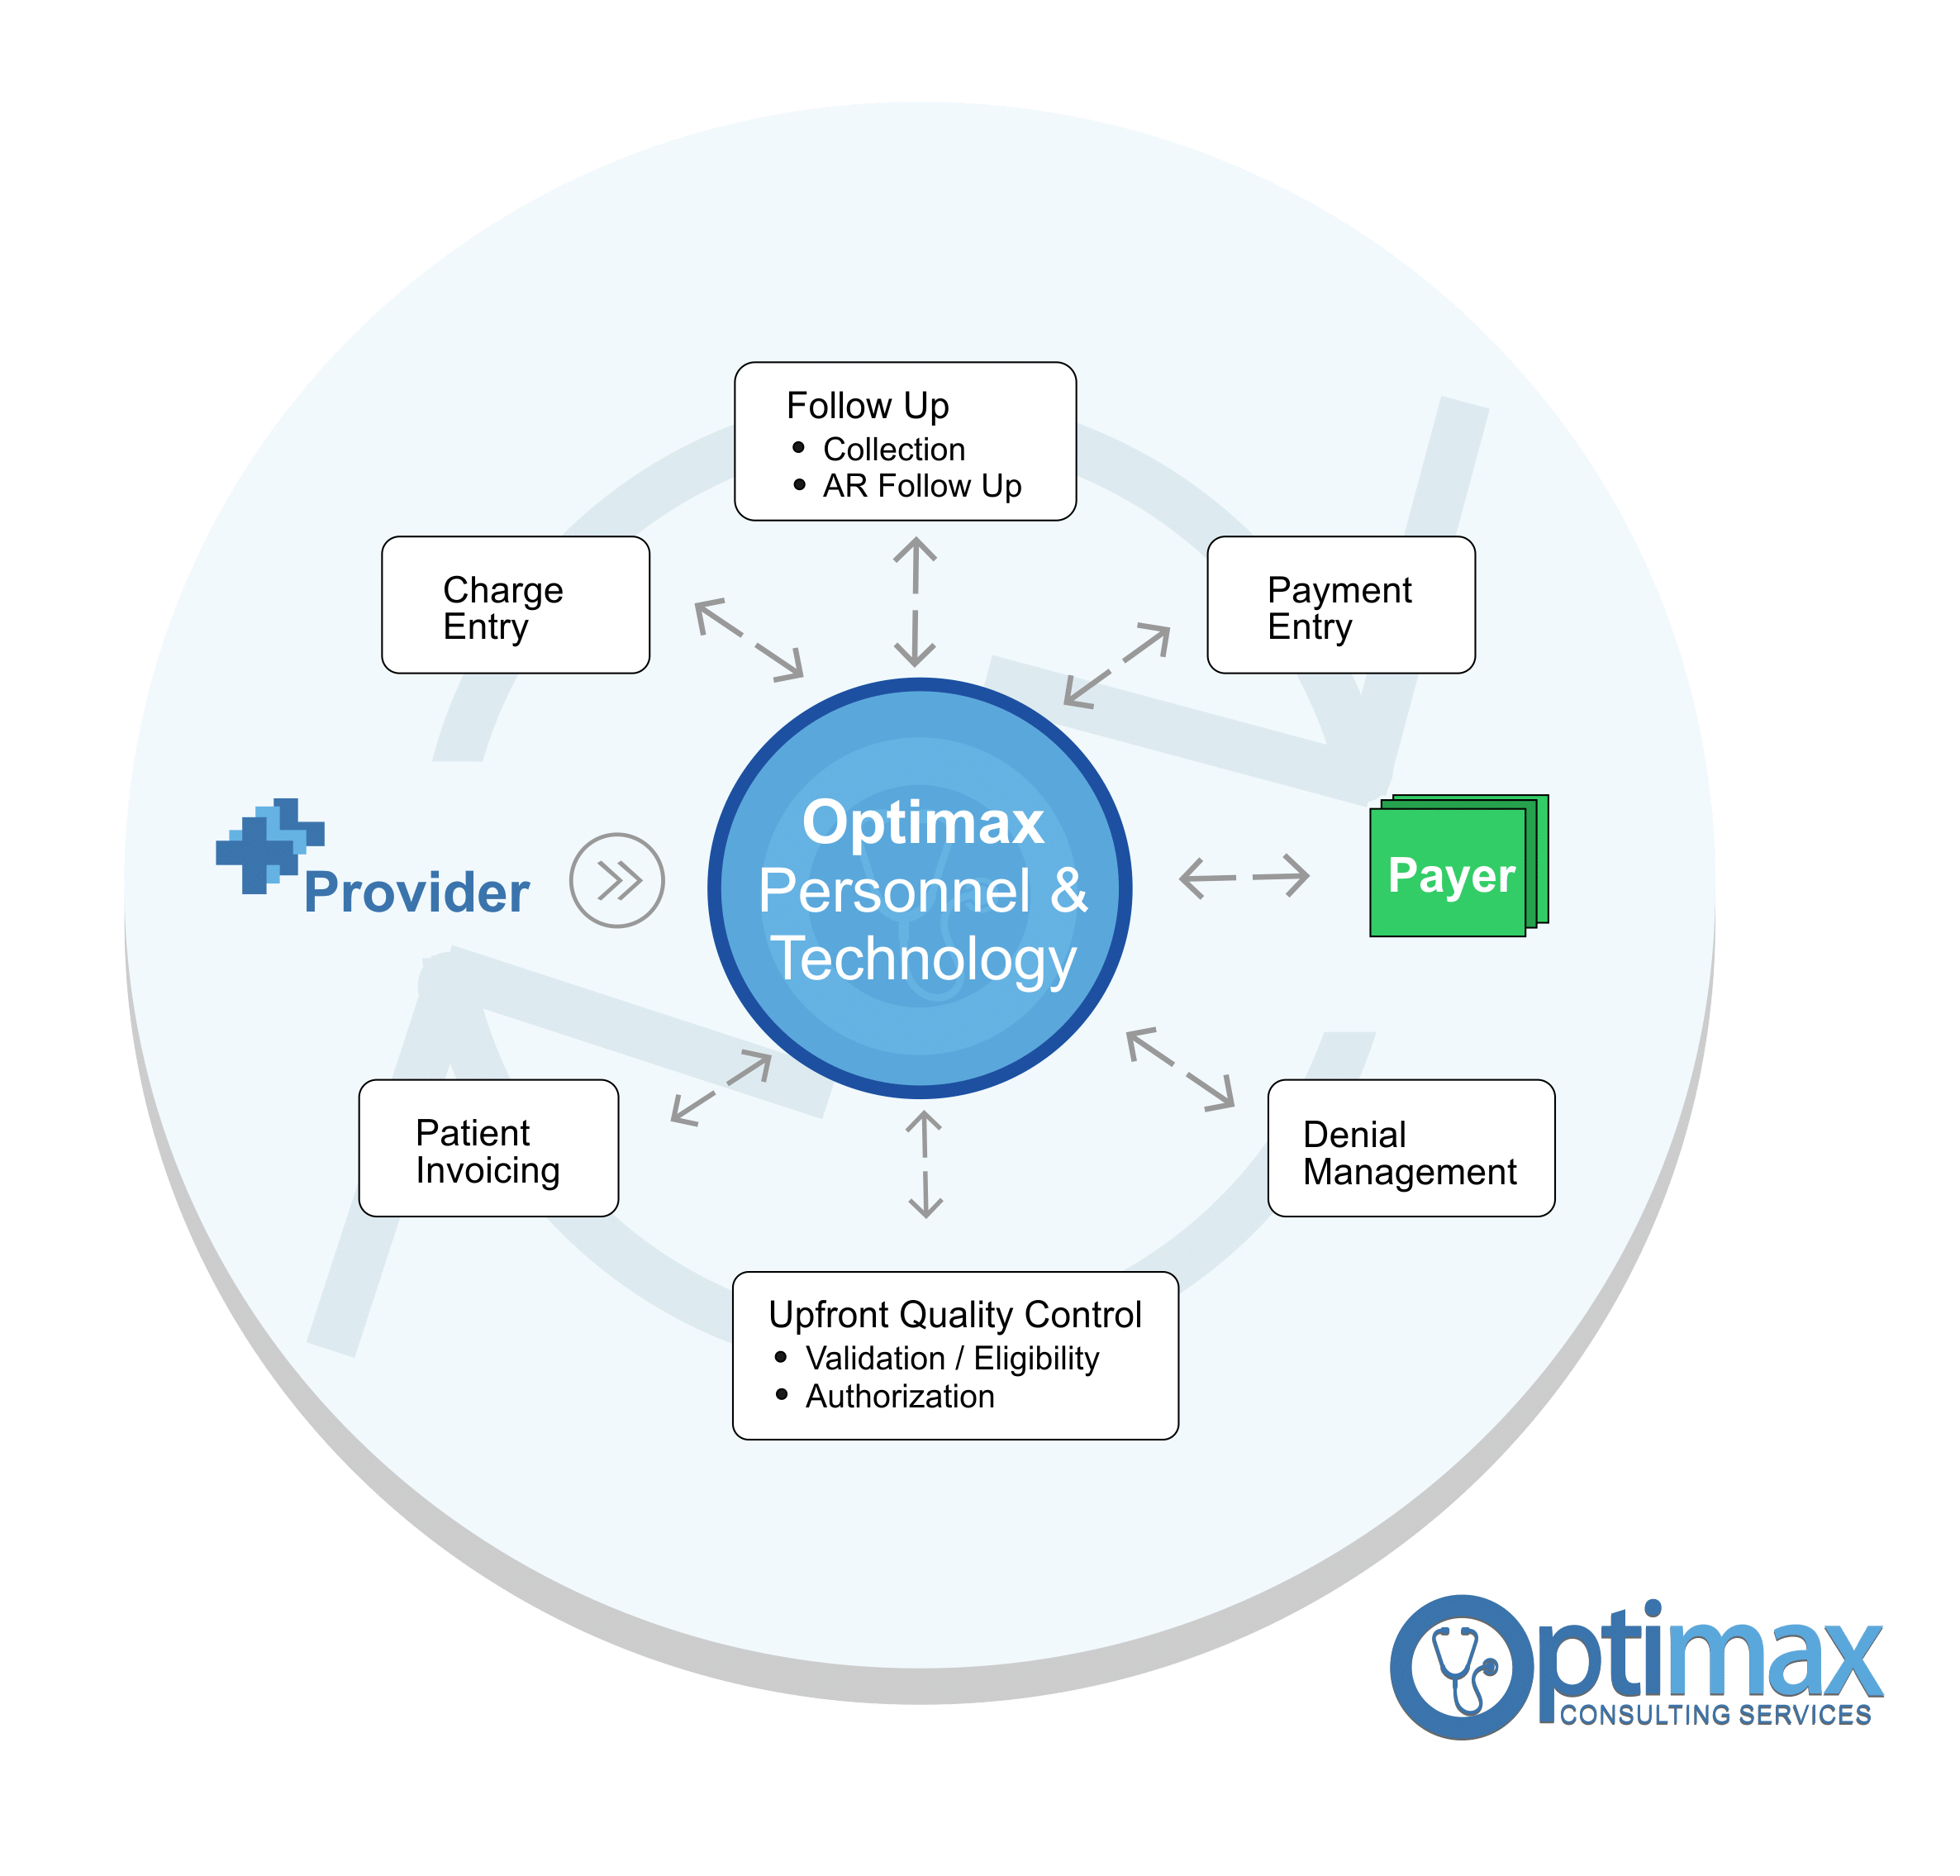 optimax billing process chart 2